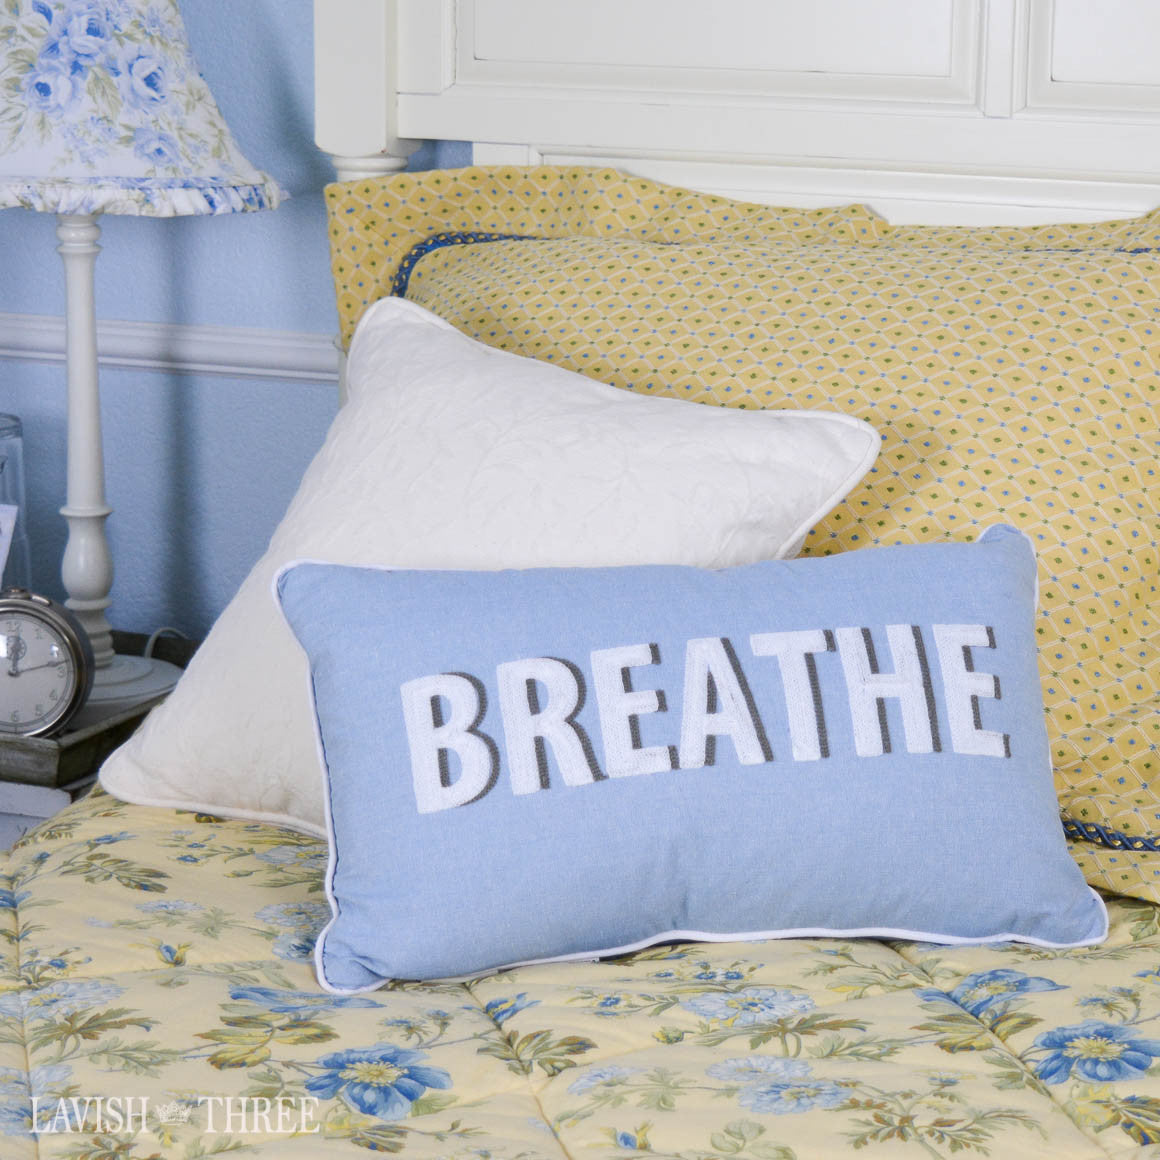 """Breathe"" embroidered accent throw decorator pillow in powder blue & white"